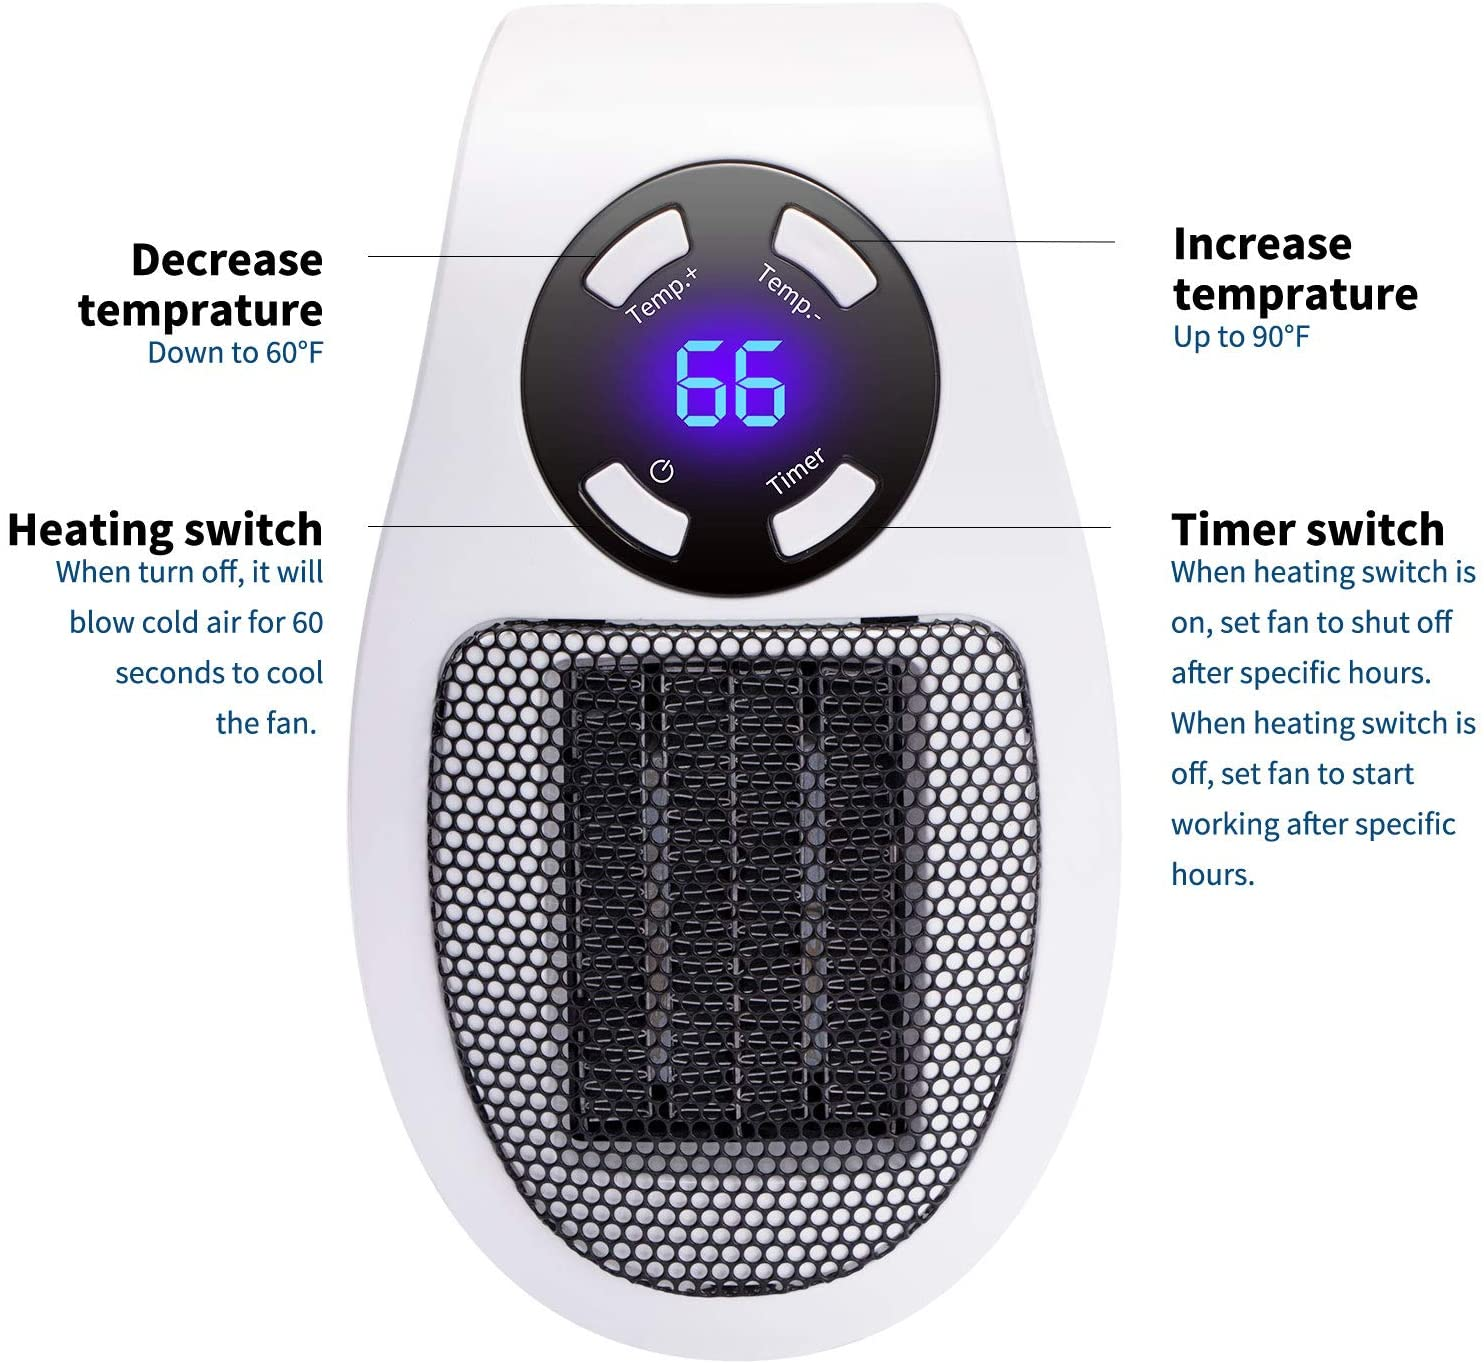 350W Space heater, Wall Outlet Electric Space Heater as Seen on TV with Adjustable Thermostat and Timer and Led Display, Compact for Office Dorm Room